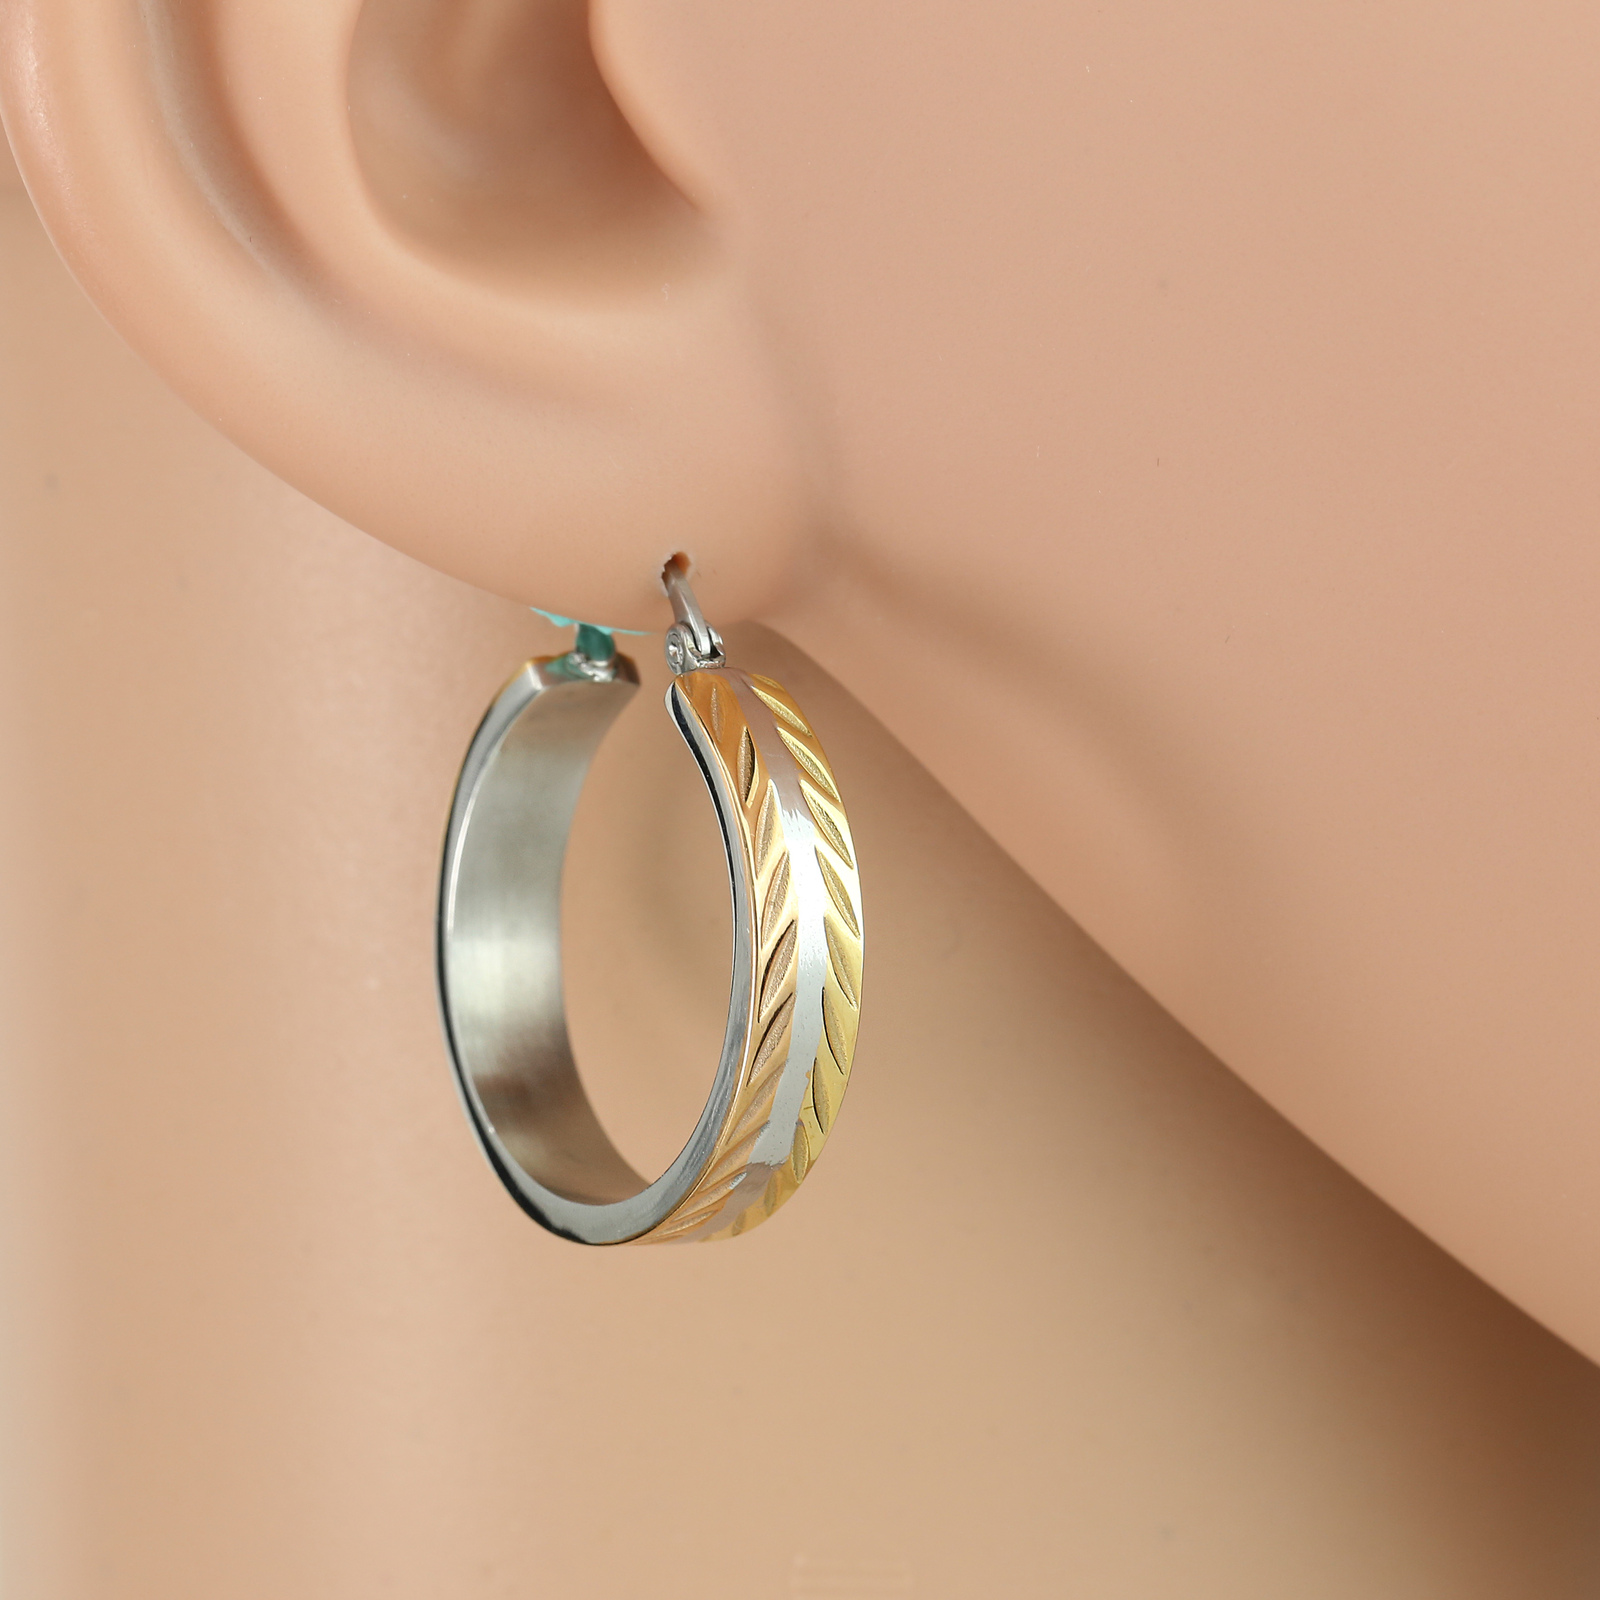 Chic Polished Tri-Color Silver, Gold & Rose Tone Hoop Earrings- United Elegance